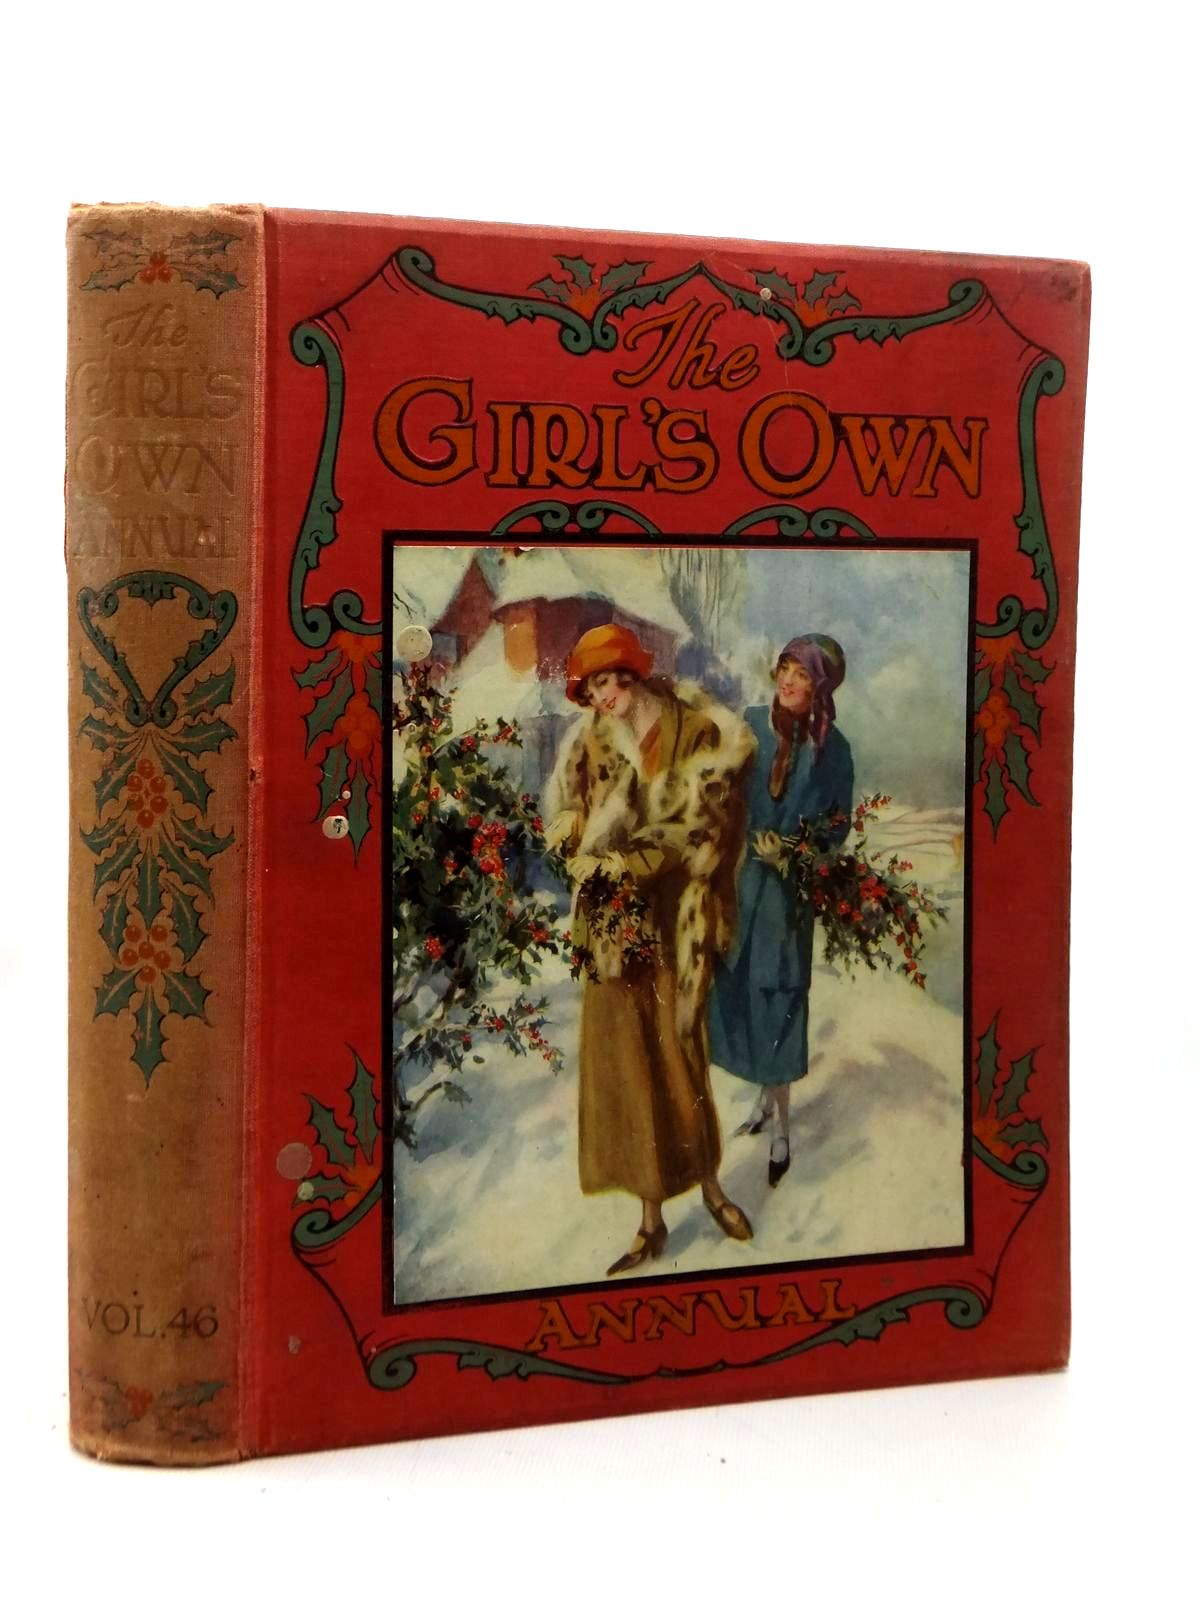 Photo of GIRL'S OWN VOL 46 (Ed Flora Klickmann)